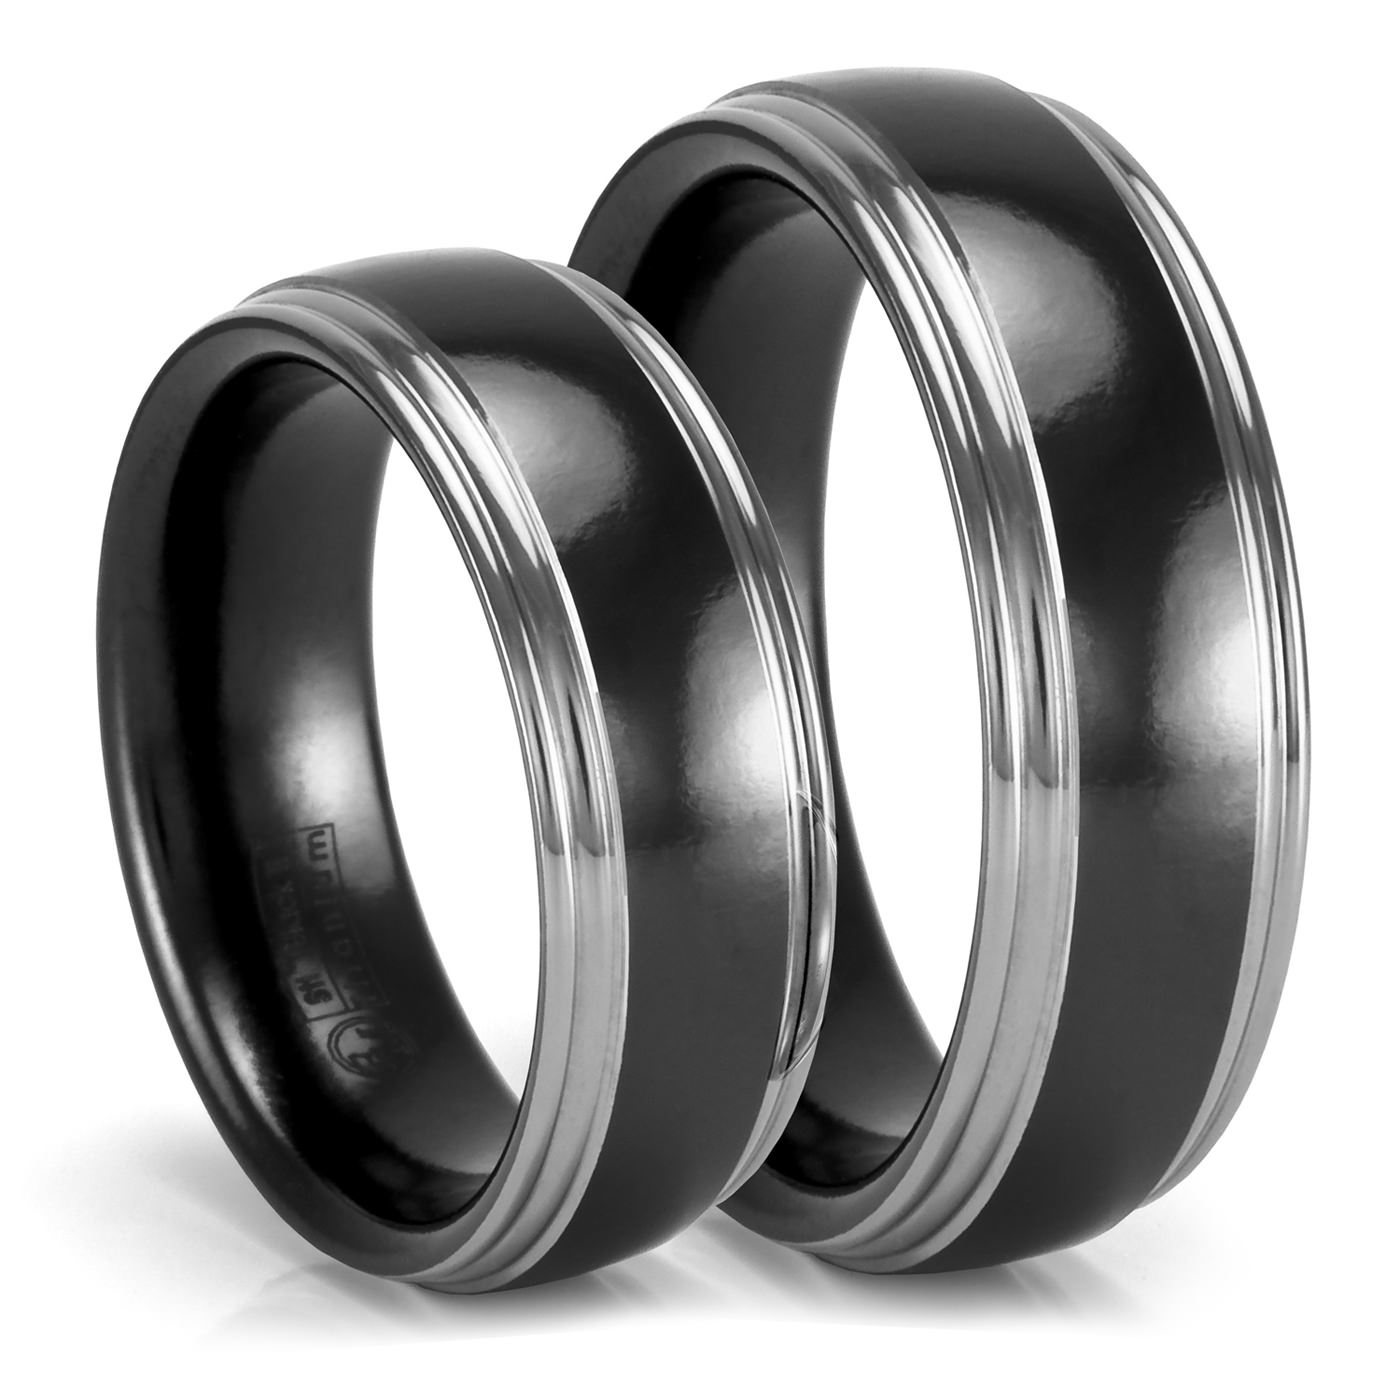 z id band black men rings for platinum ring sale co s tiffany at and mens jewelry wedding j milgrain